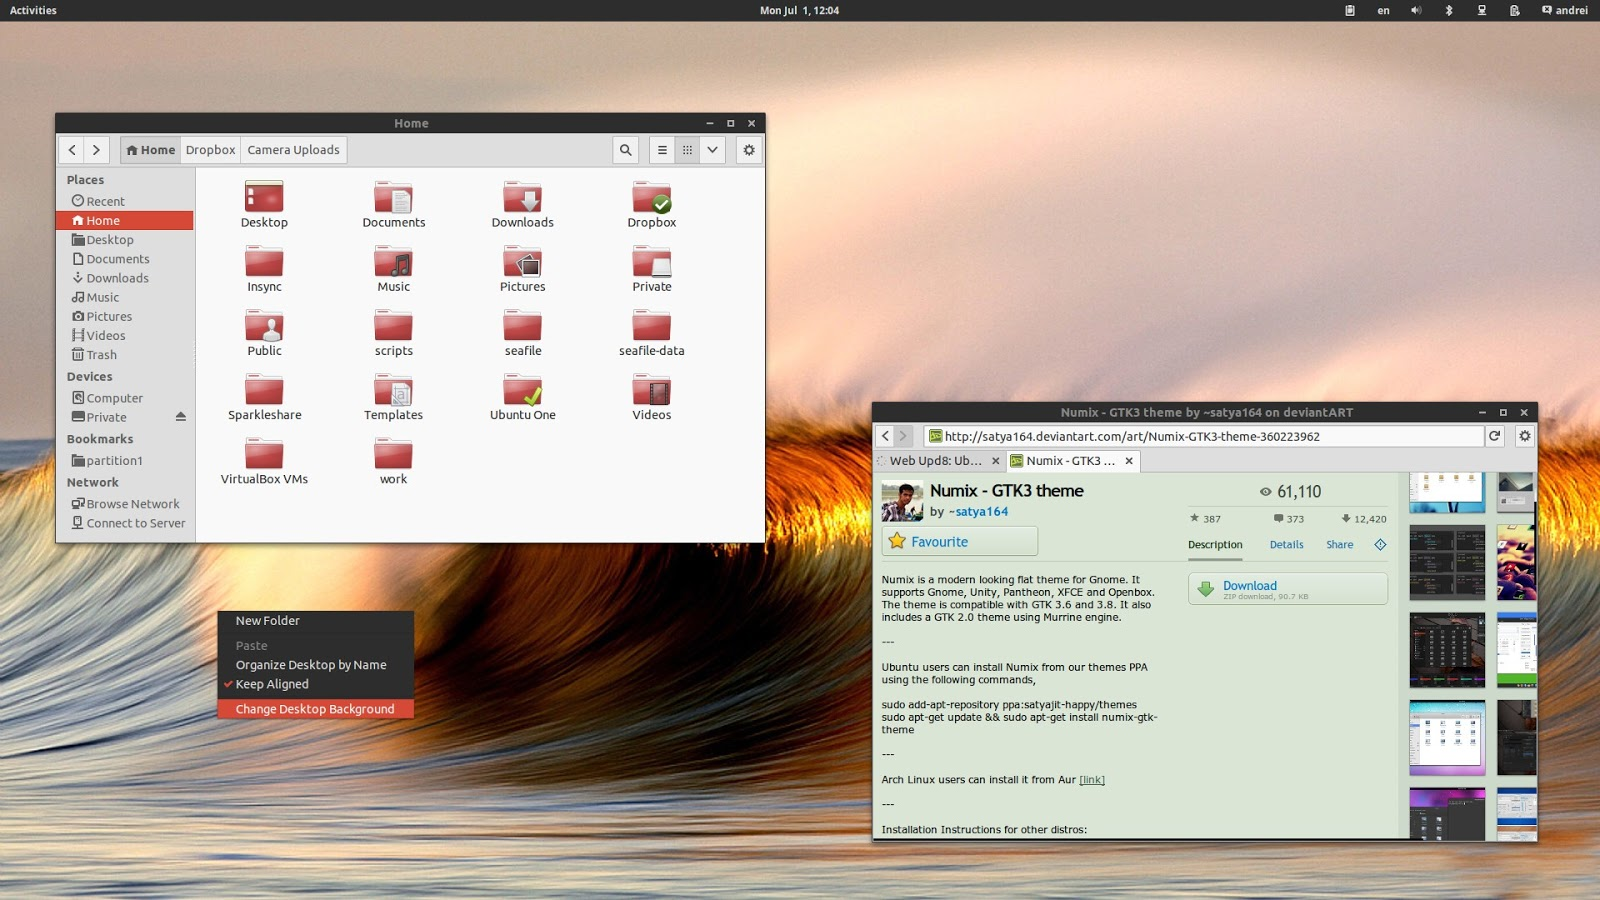 Slick GTK3 Theme `Numix` Updated With Dark Theme Assets ~ Web Upd8